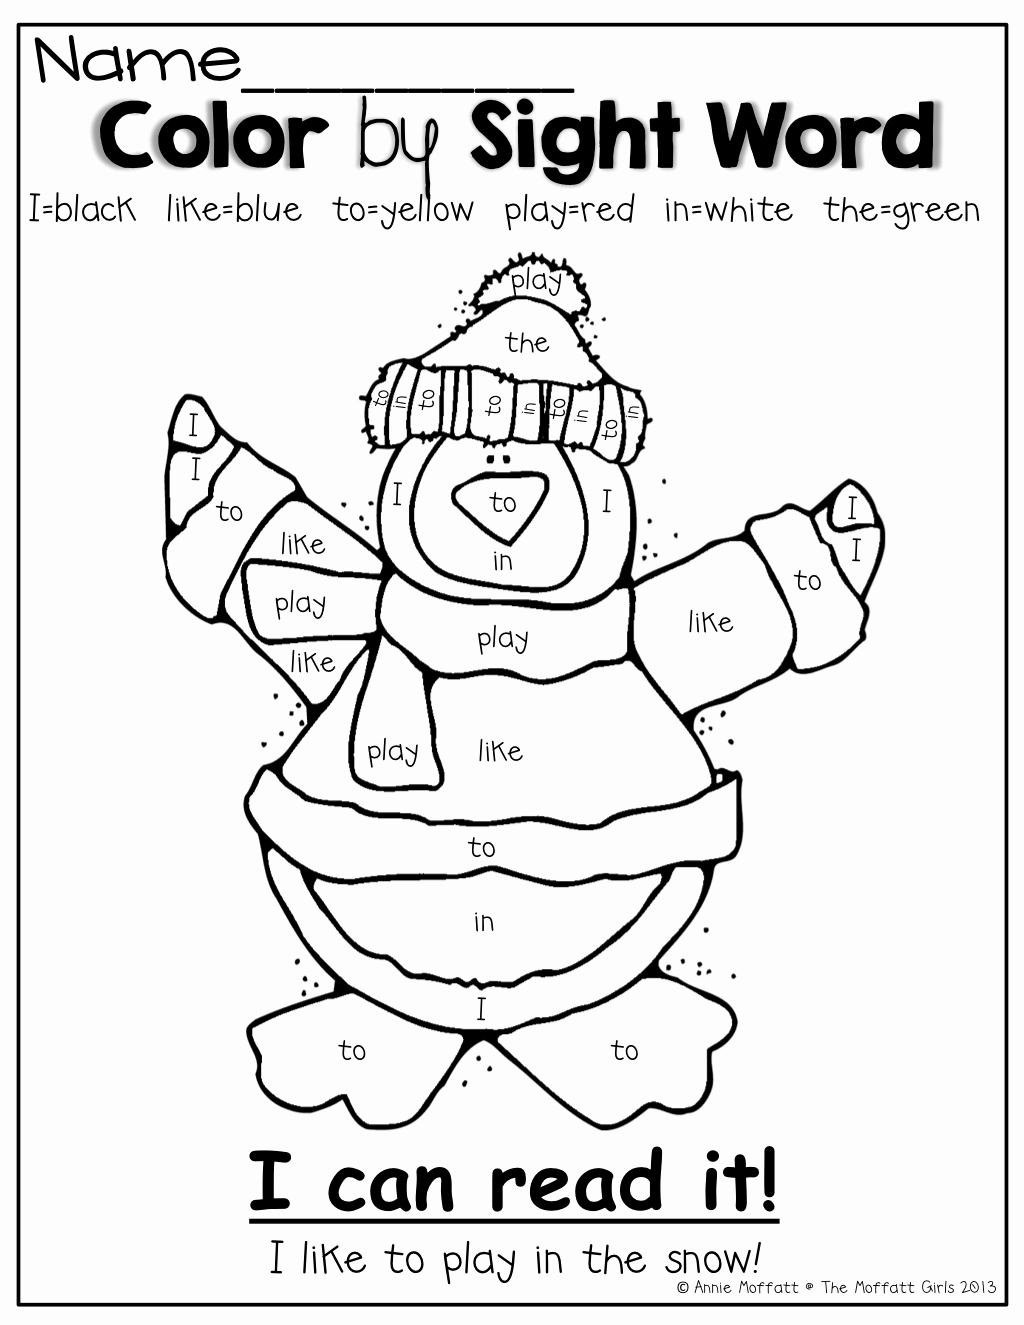 Kindergarten Sight Word Coloring Worksheets Luxury Color by Sight Word Such A Fun Way to Practice and